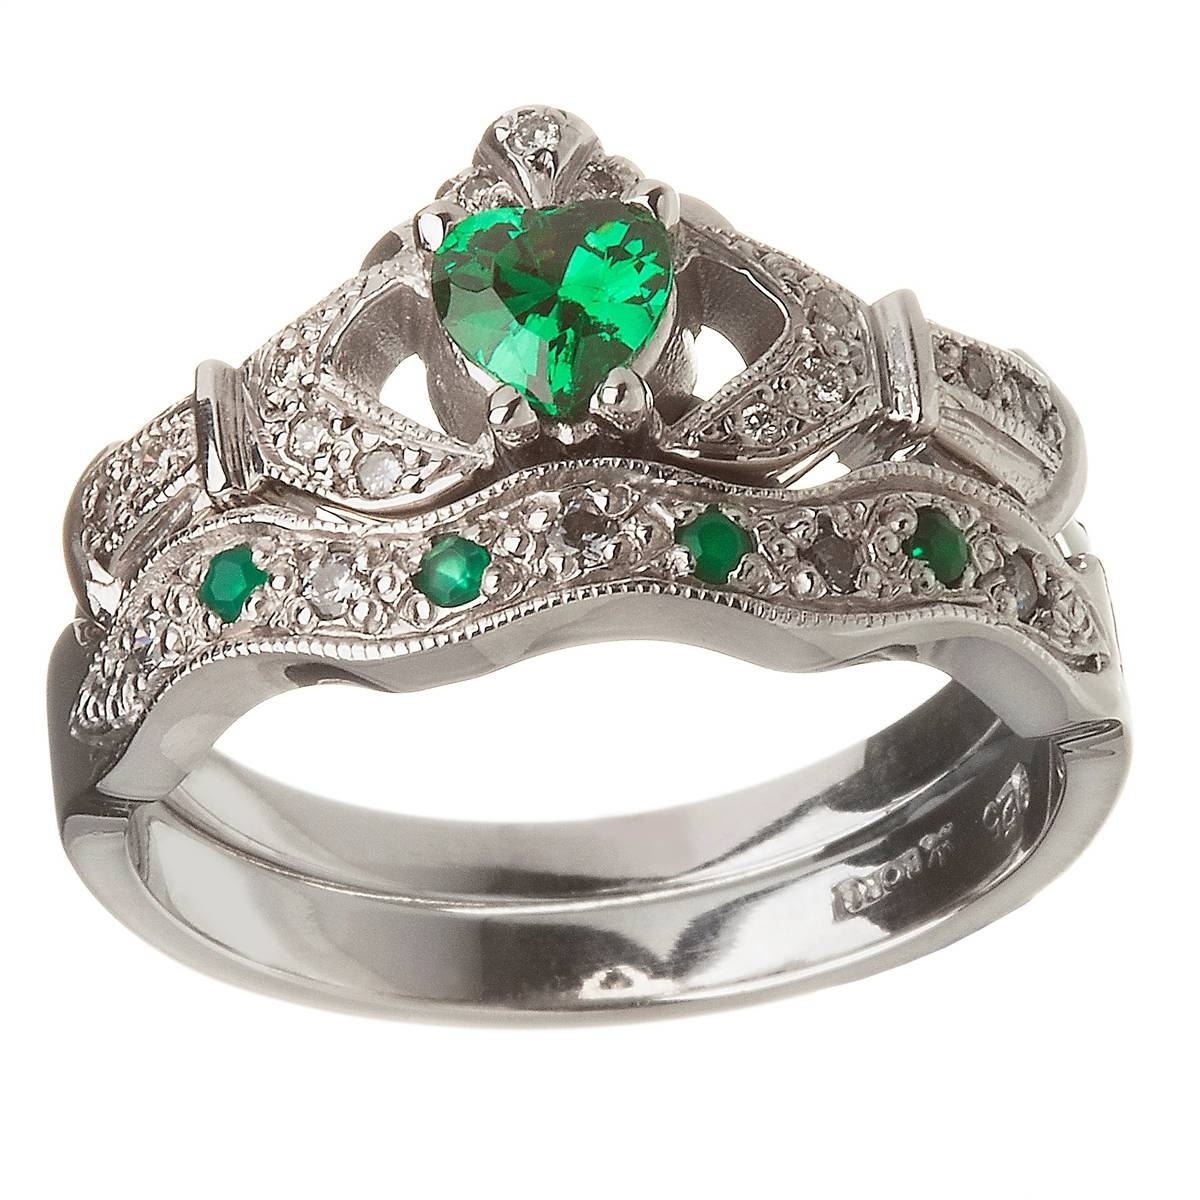 14k White Gold Emerald Set Heart Claddagh Ring & Wedding Ring Set Pertaining To Irish Claddagh Engagement Rings (View 3 of 15)